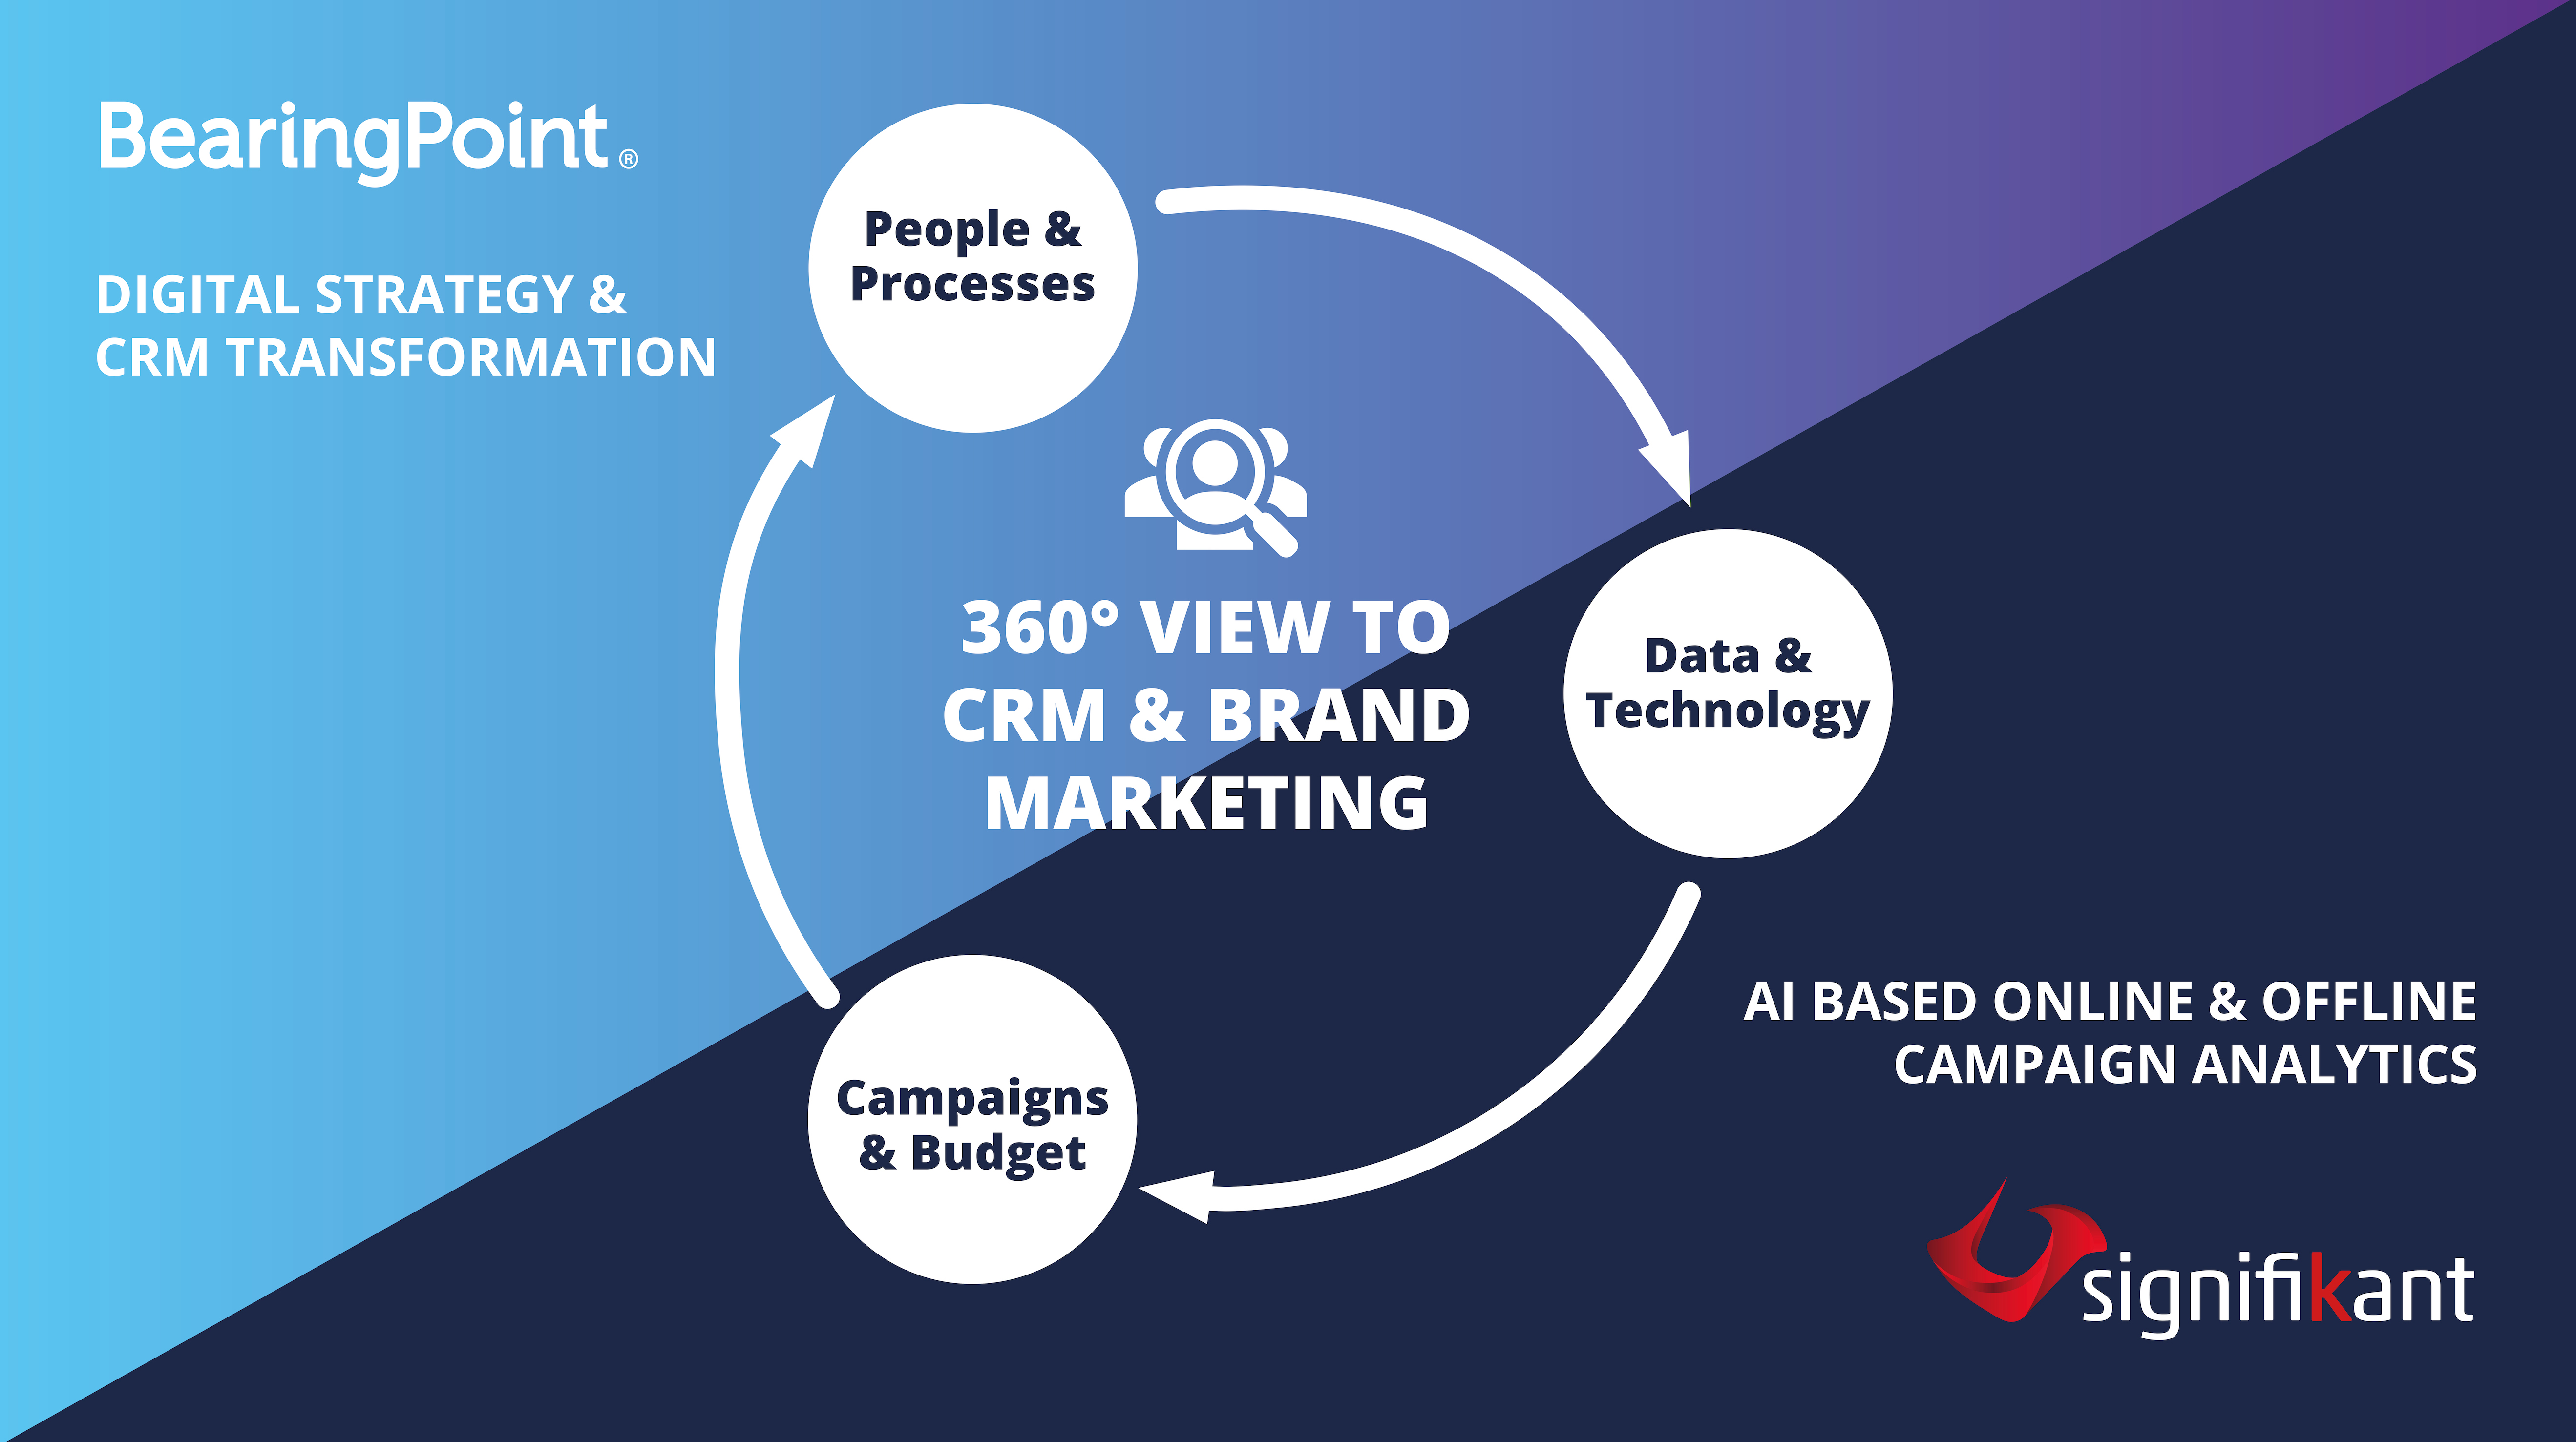 Overview of the 360° View to CRM & Brand Marketing